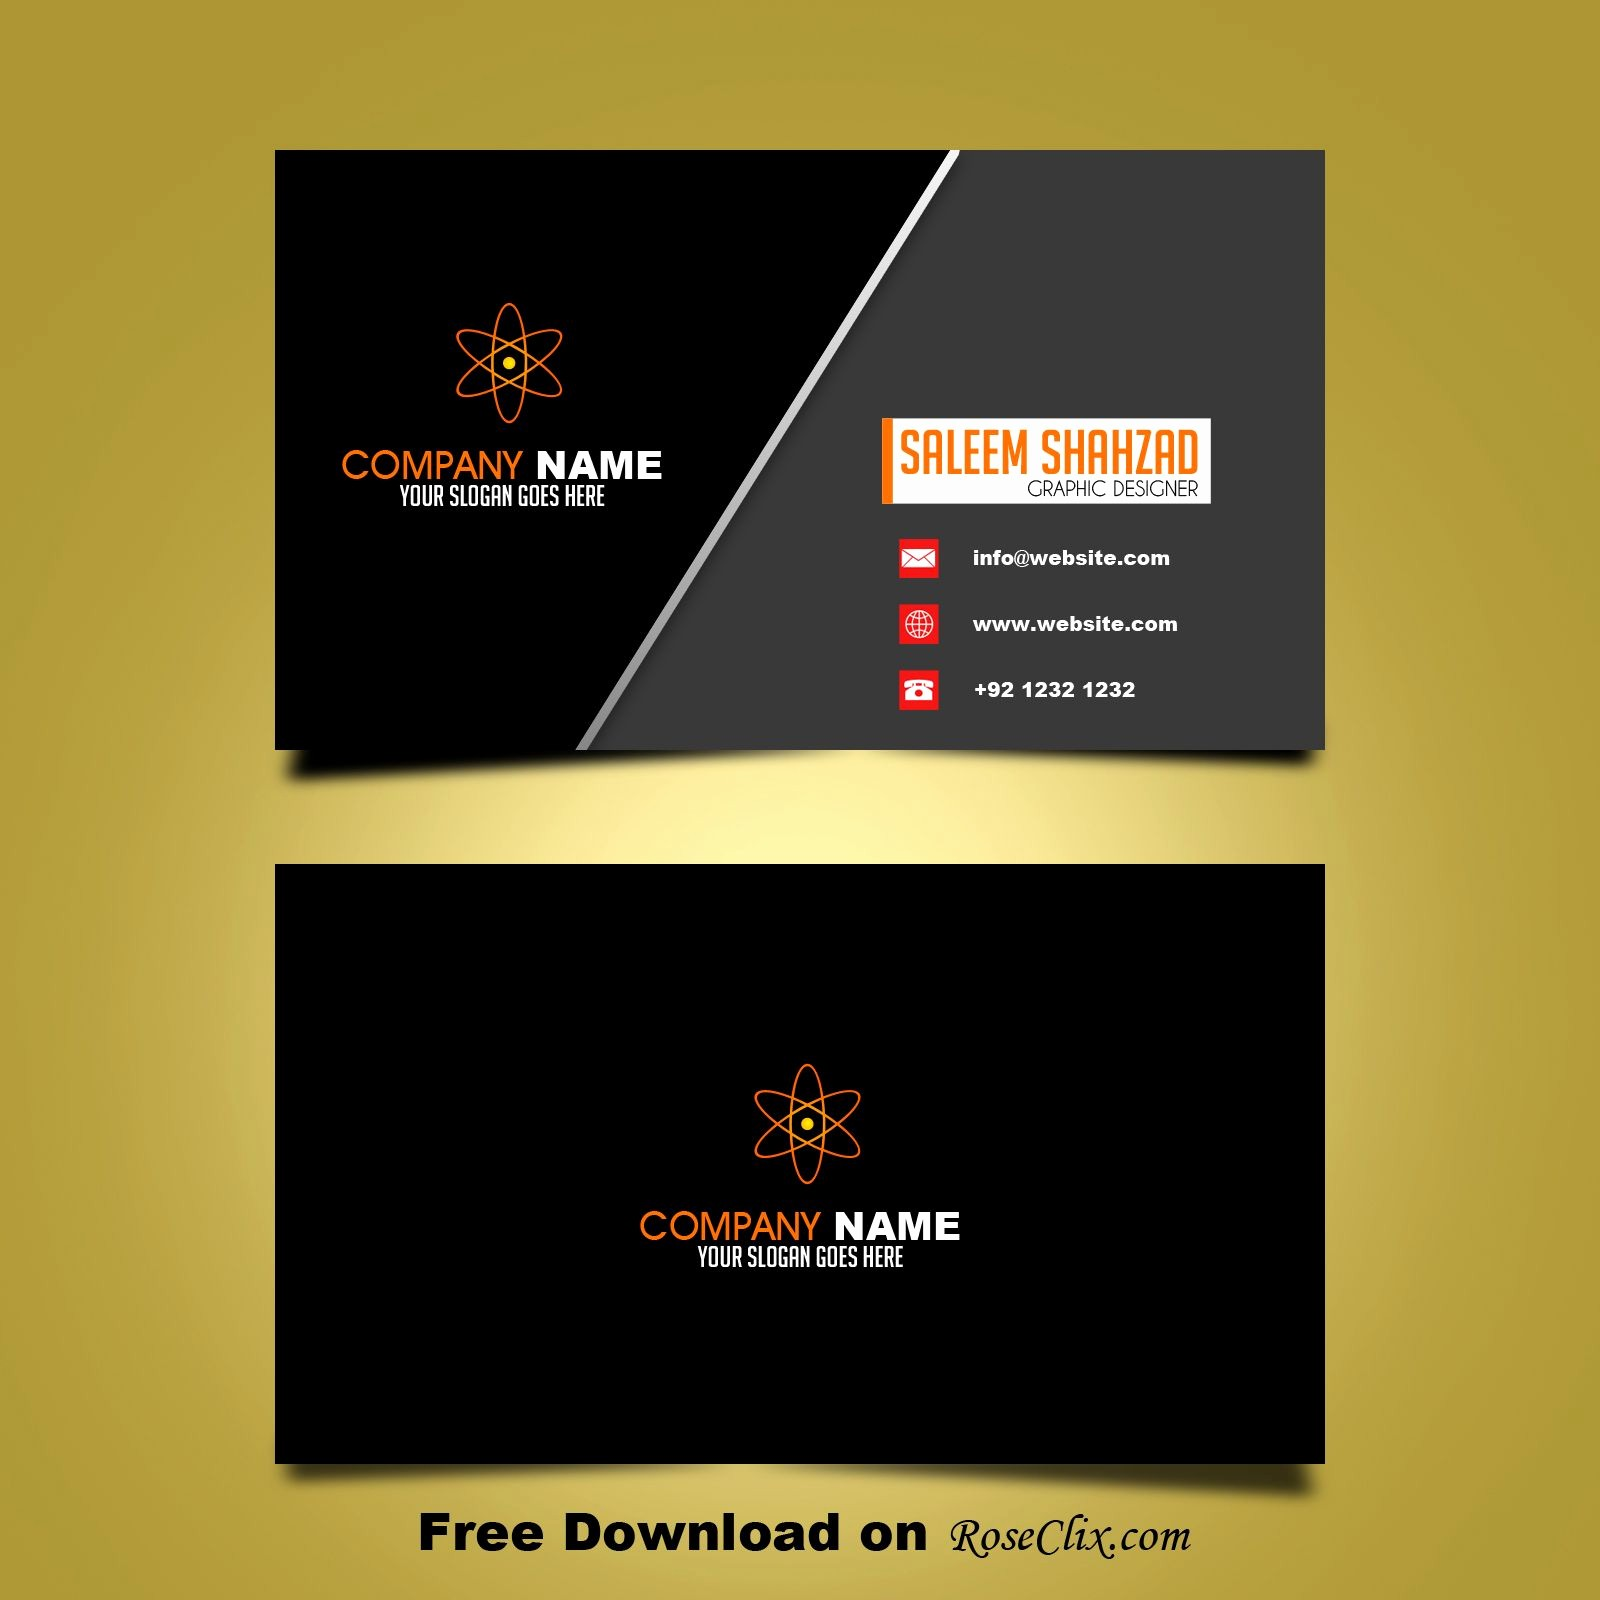 Calling Card Template Free Download Best Of Free Business Card Design Template Vector Shapes Psd